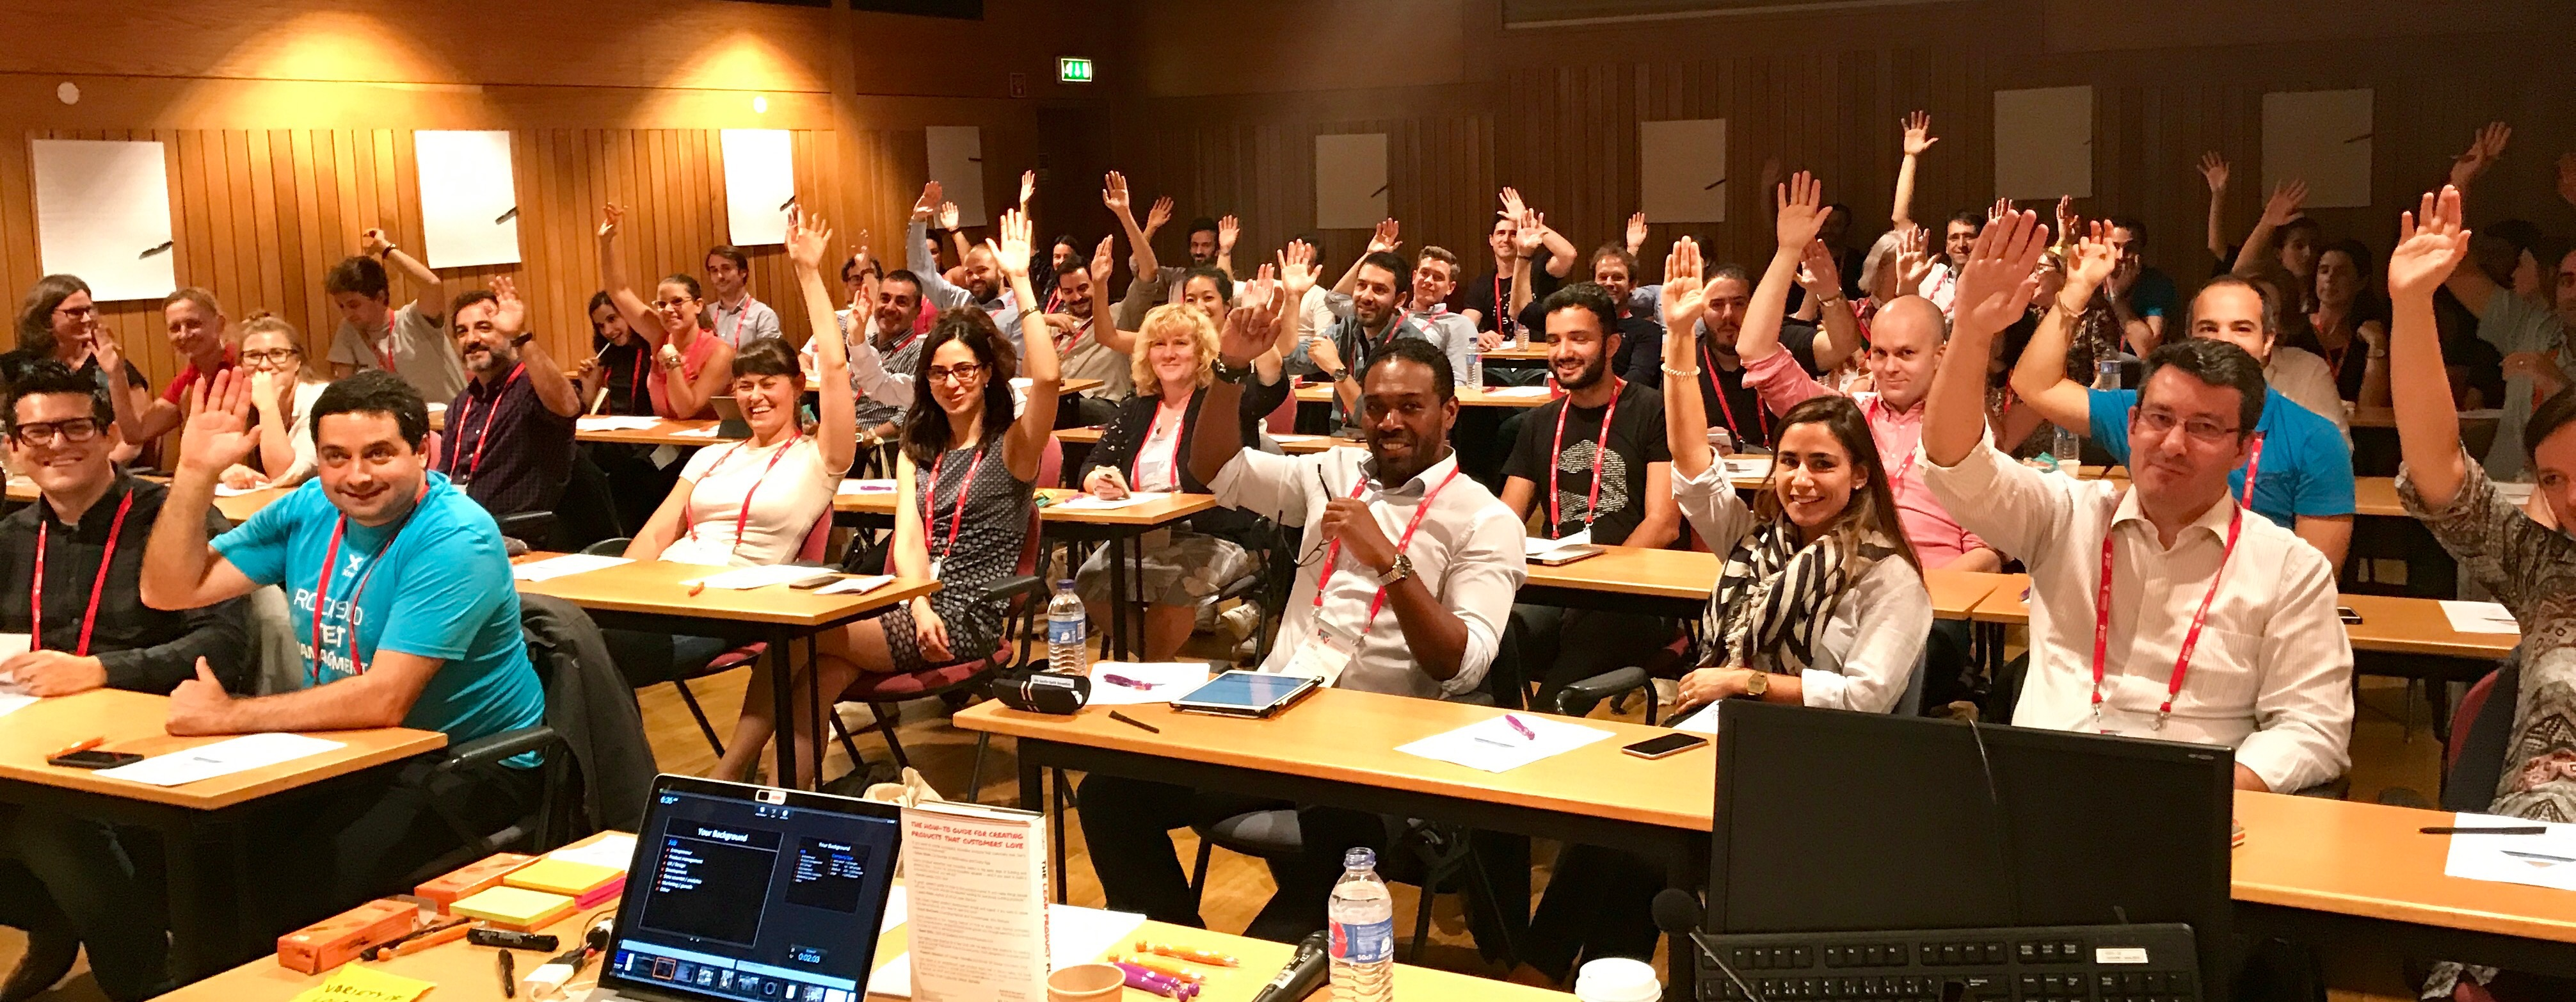 A group of workshop attendees raising their hands to participate and engage with Dan.